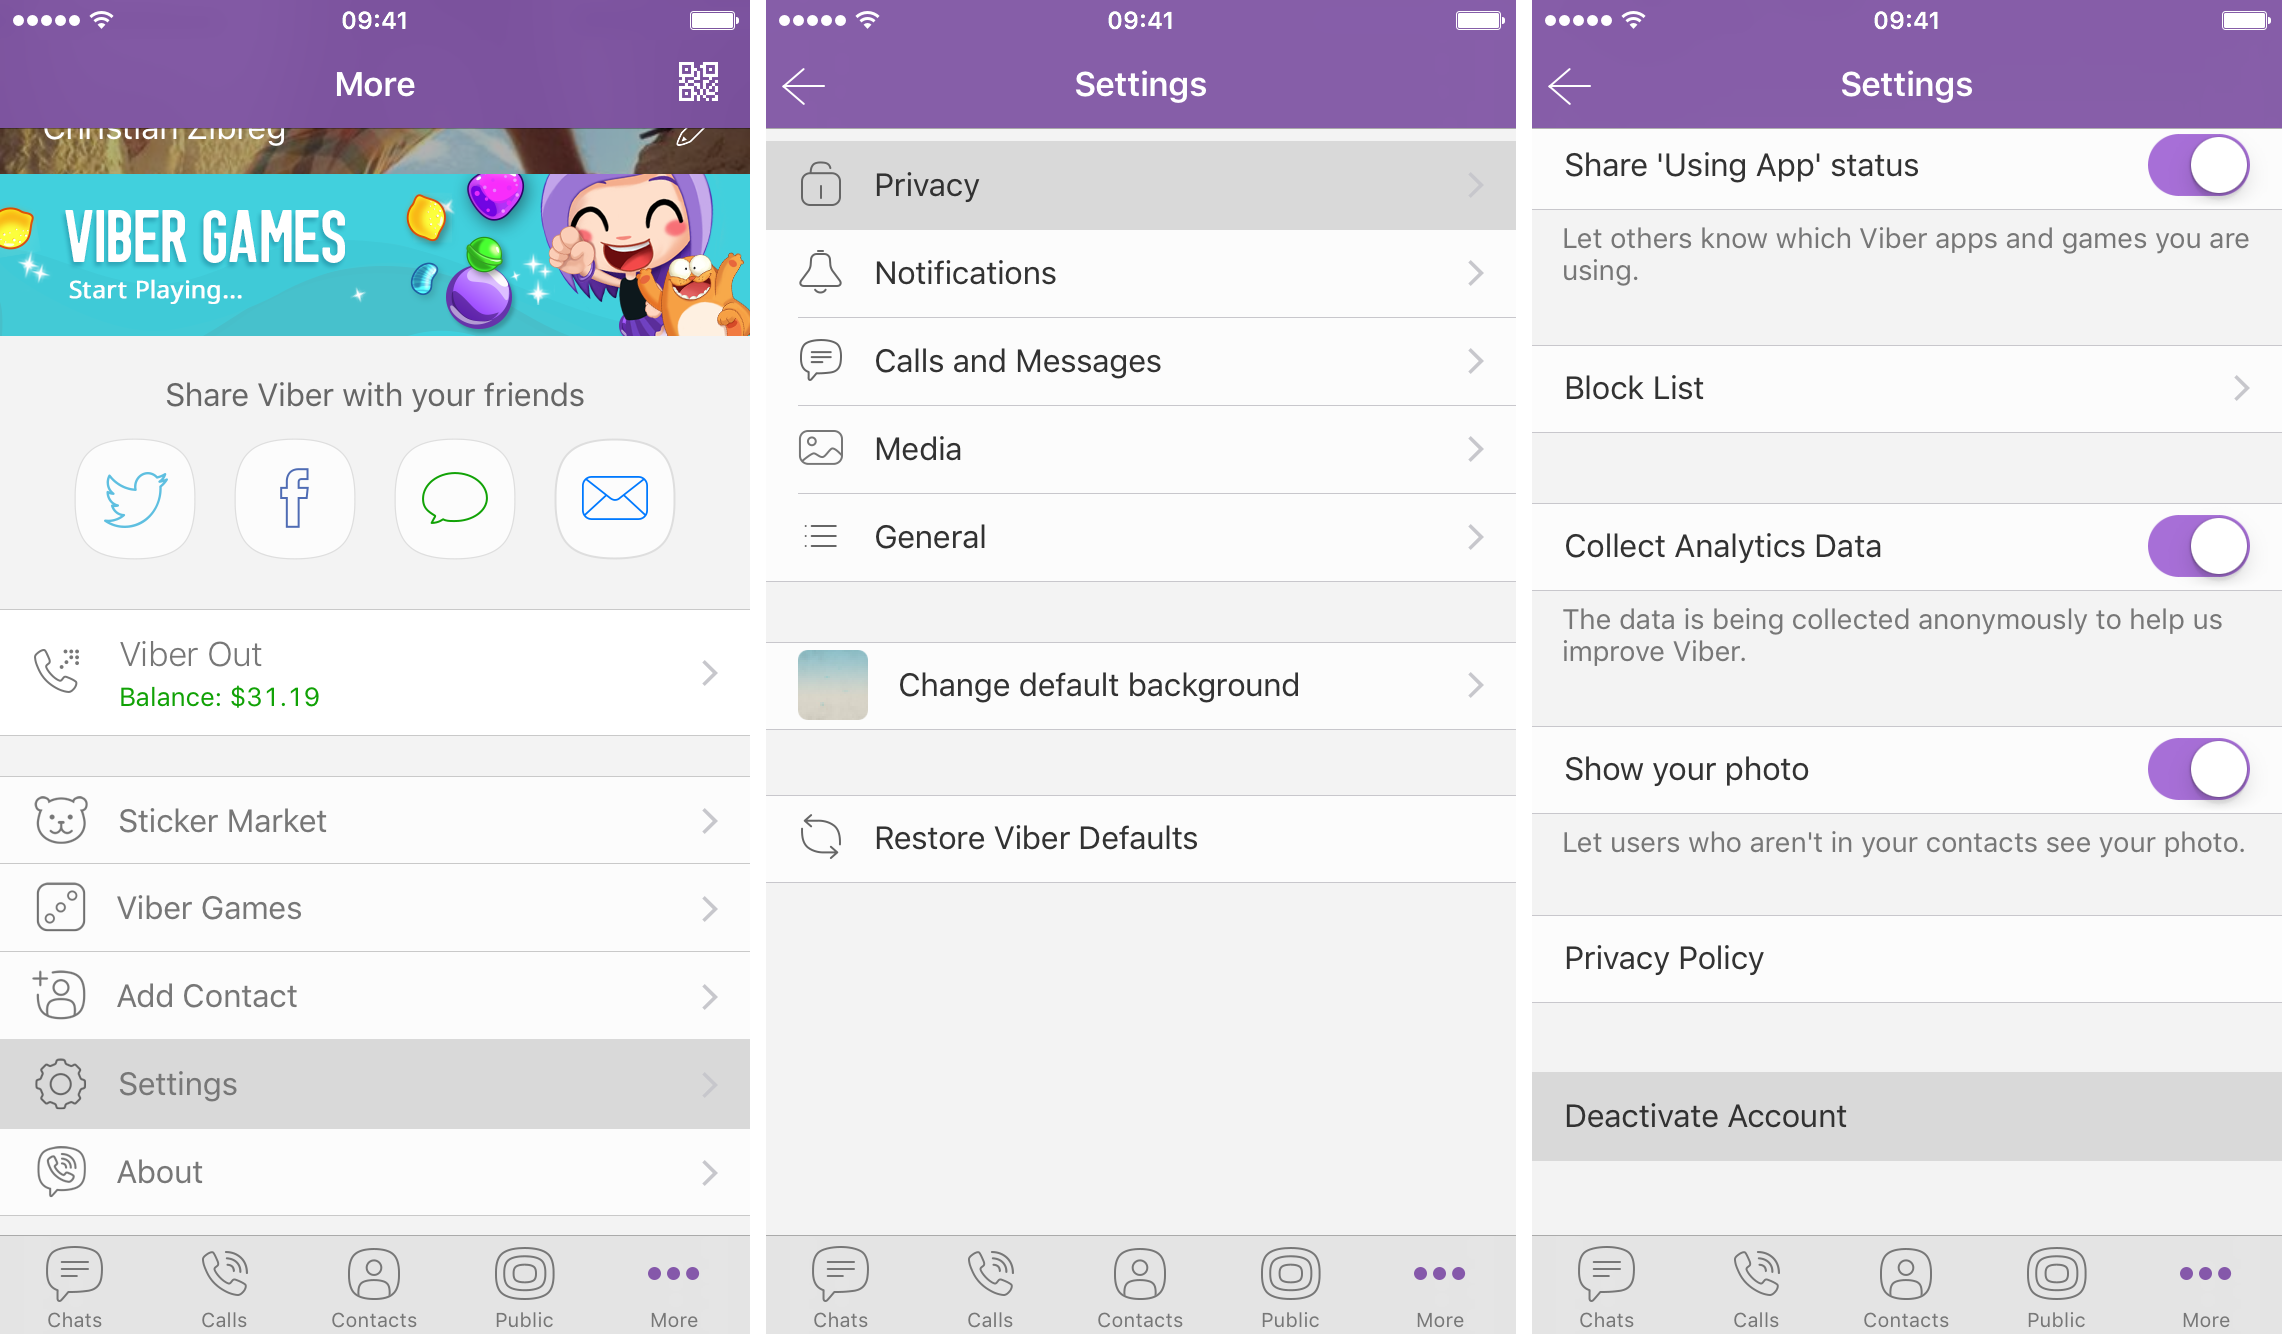 How to permanently delete your Viber account